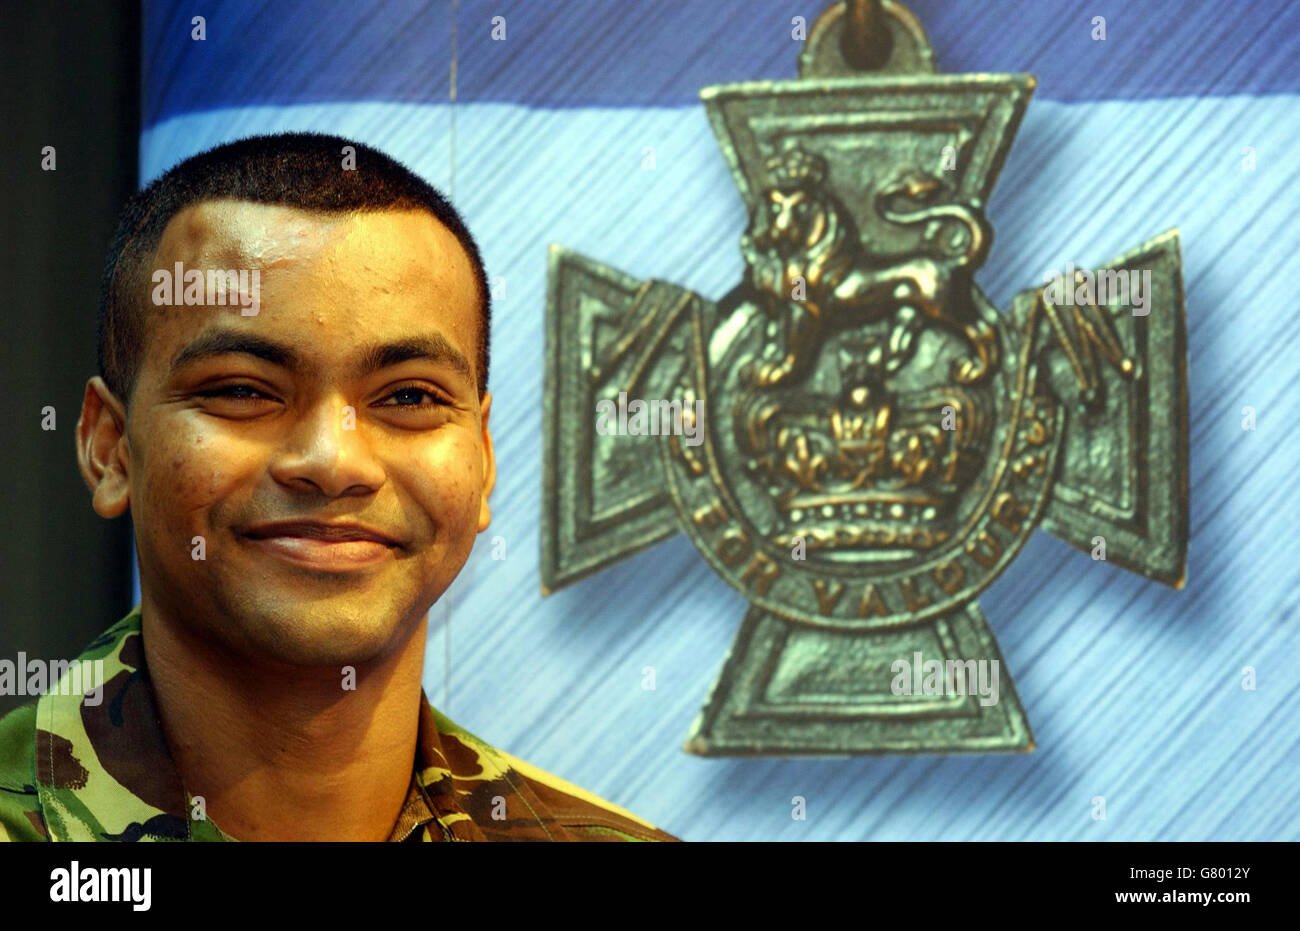 Private Johnson Gideon Beharry - Victoria Cross - Ministry of Defence - Stock Image